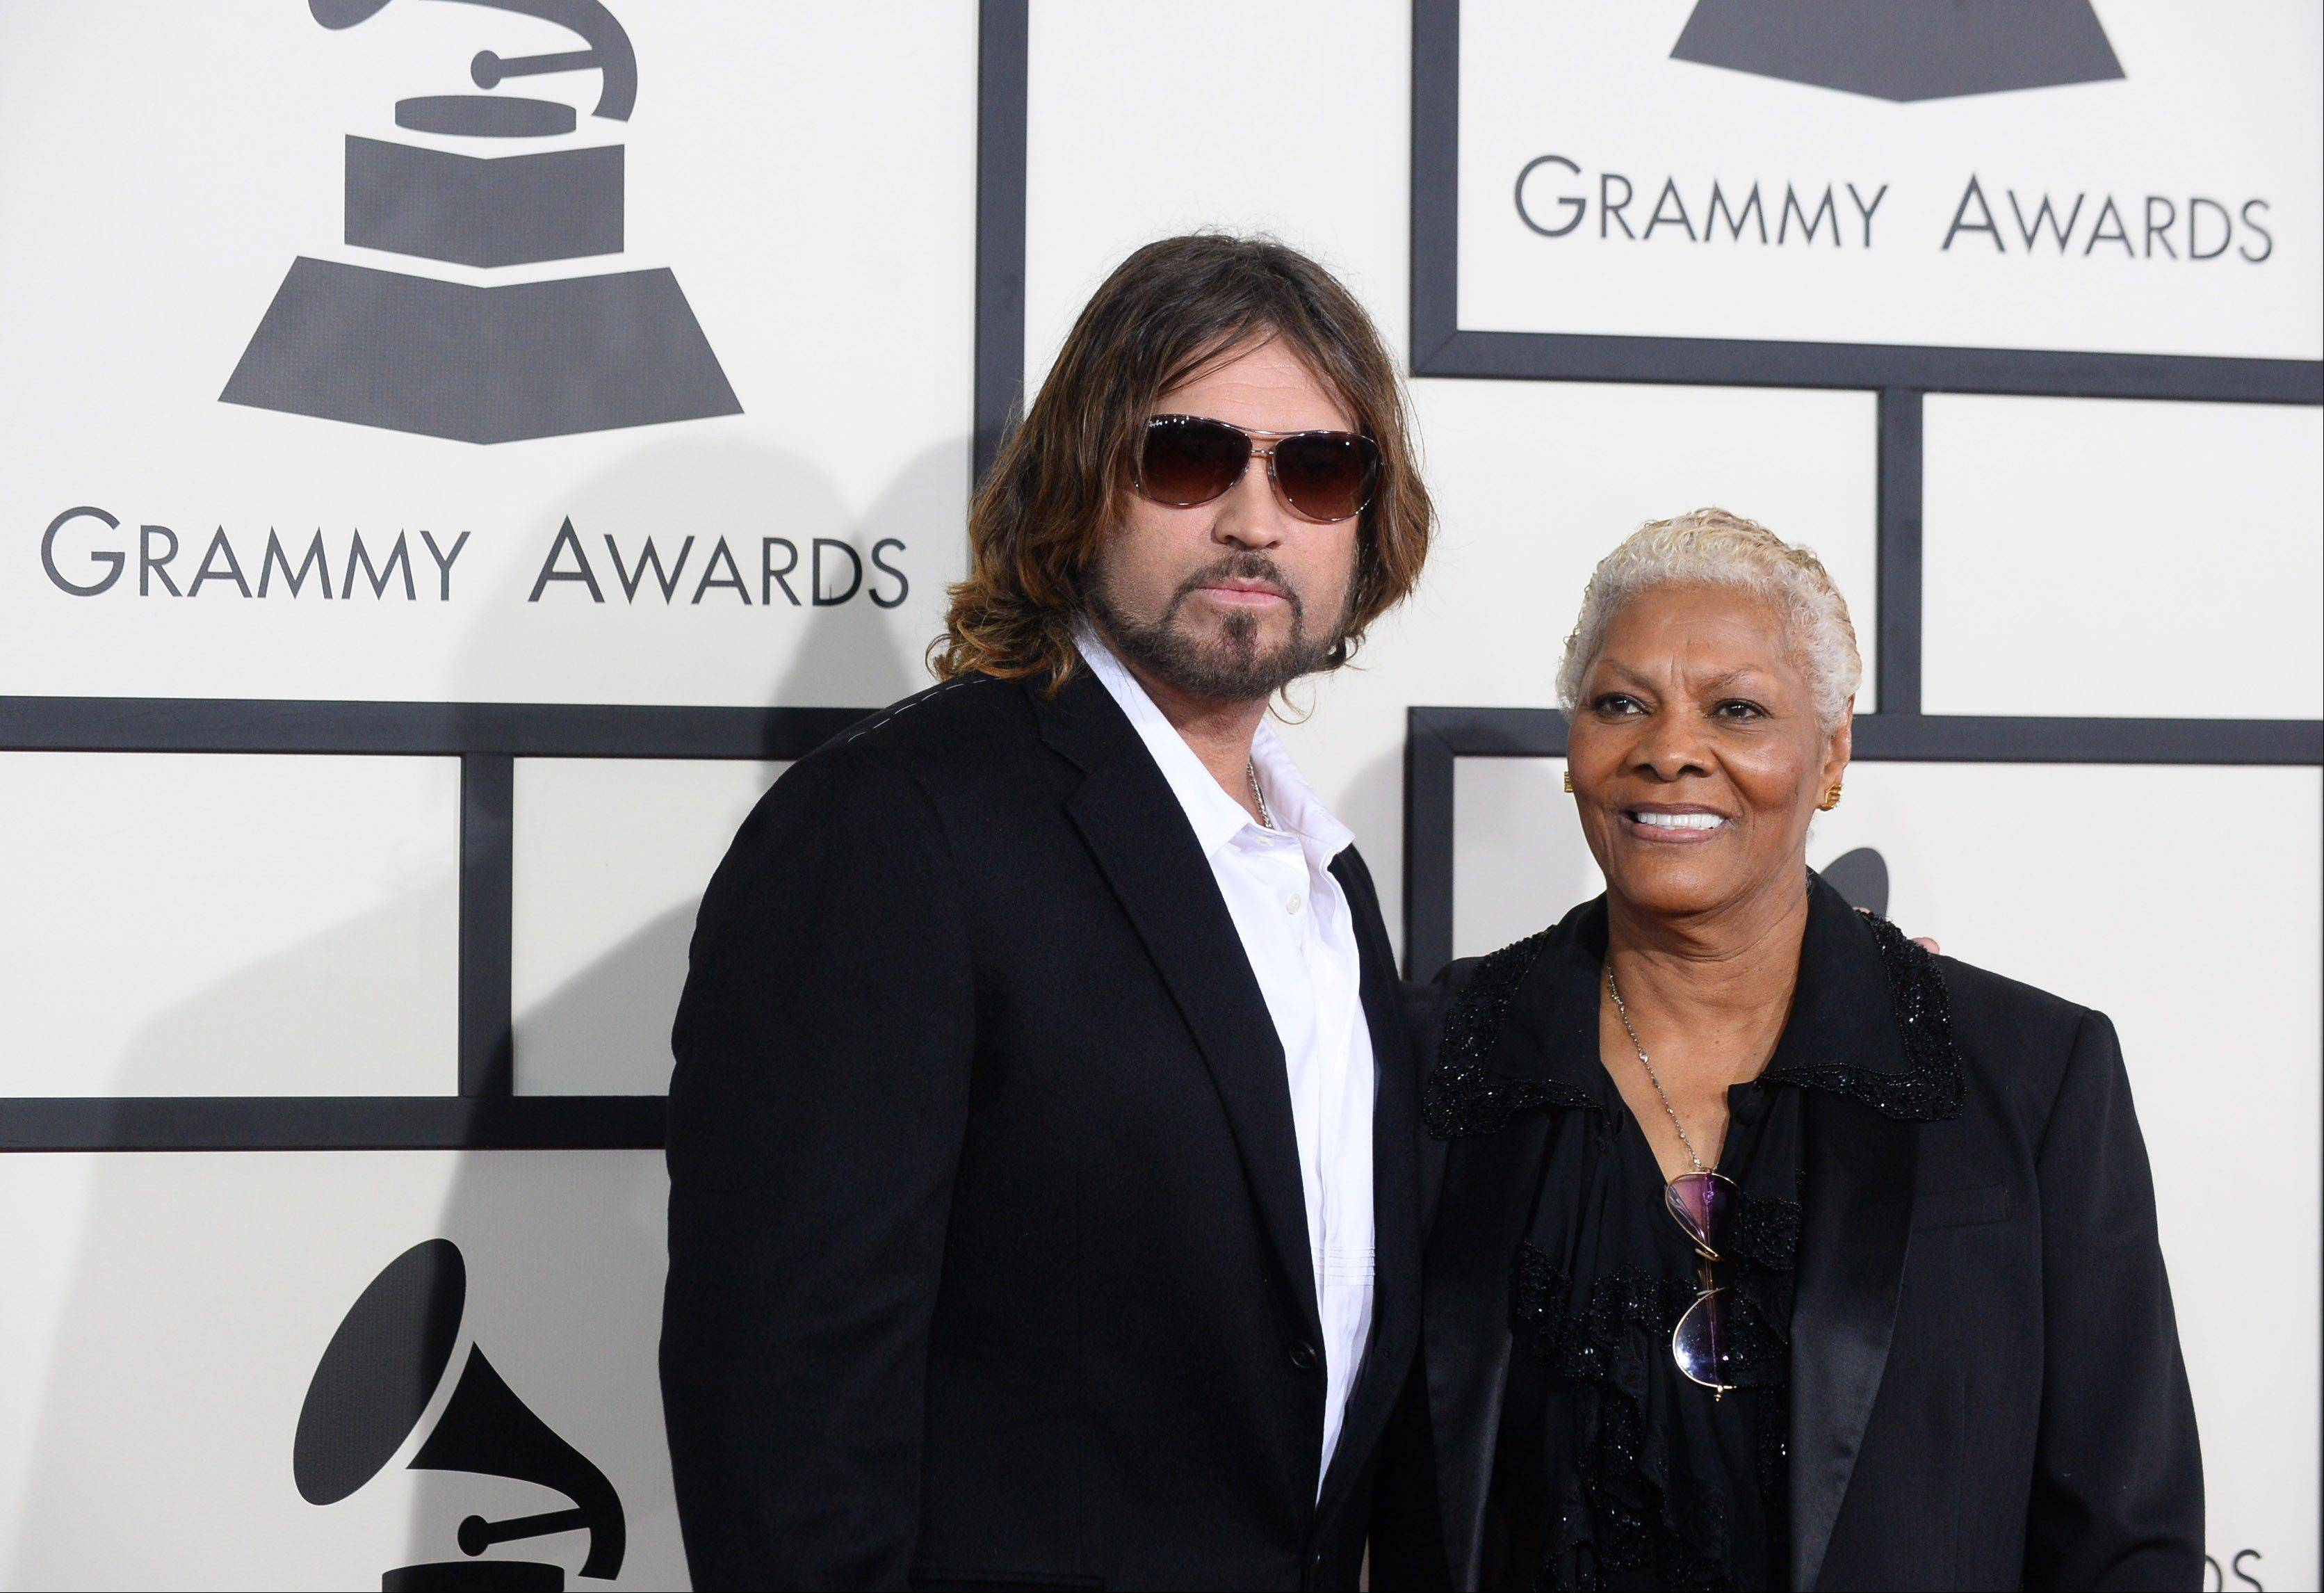 Billy Ray Cyrus and Dionne Warwick arrive at the 56th annual Grammy Awards.